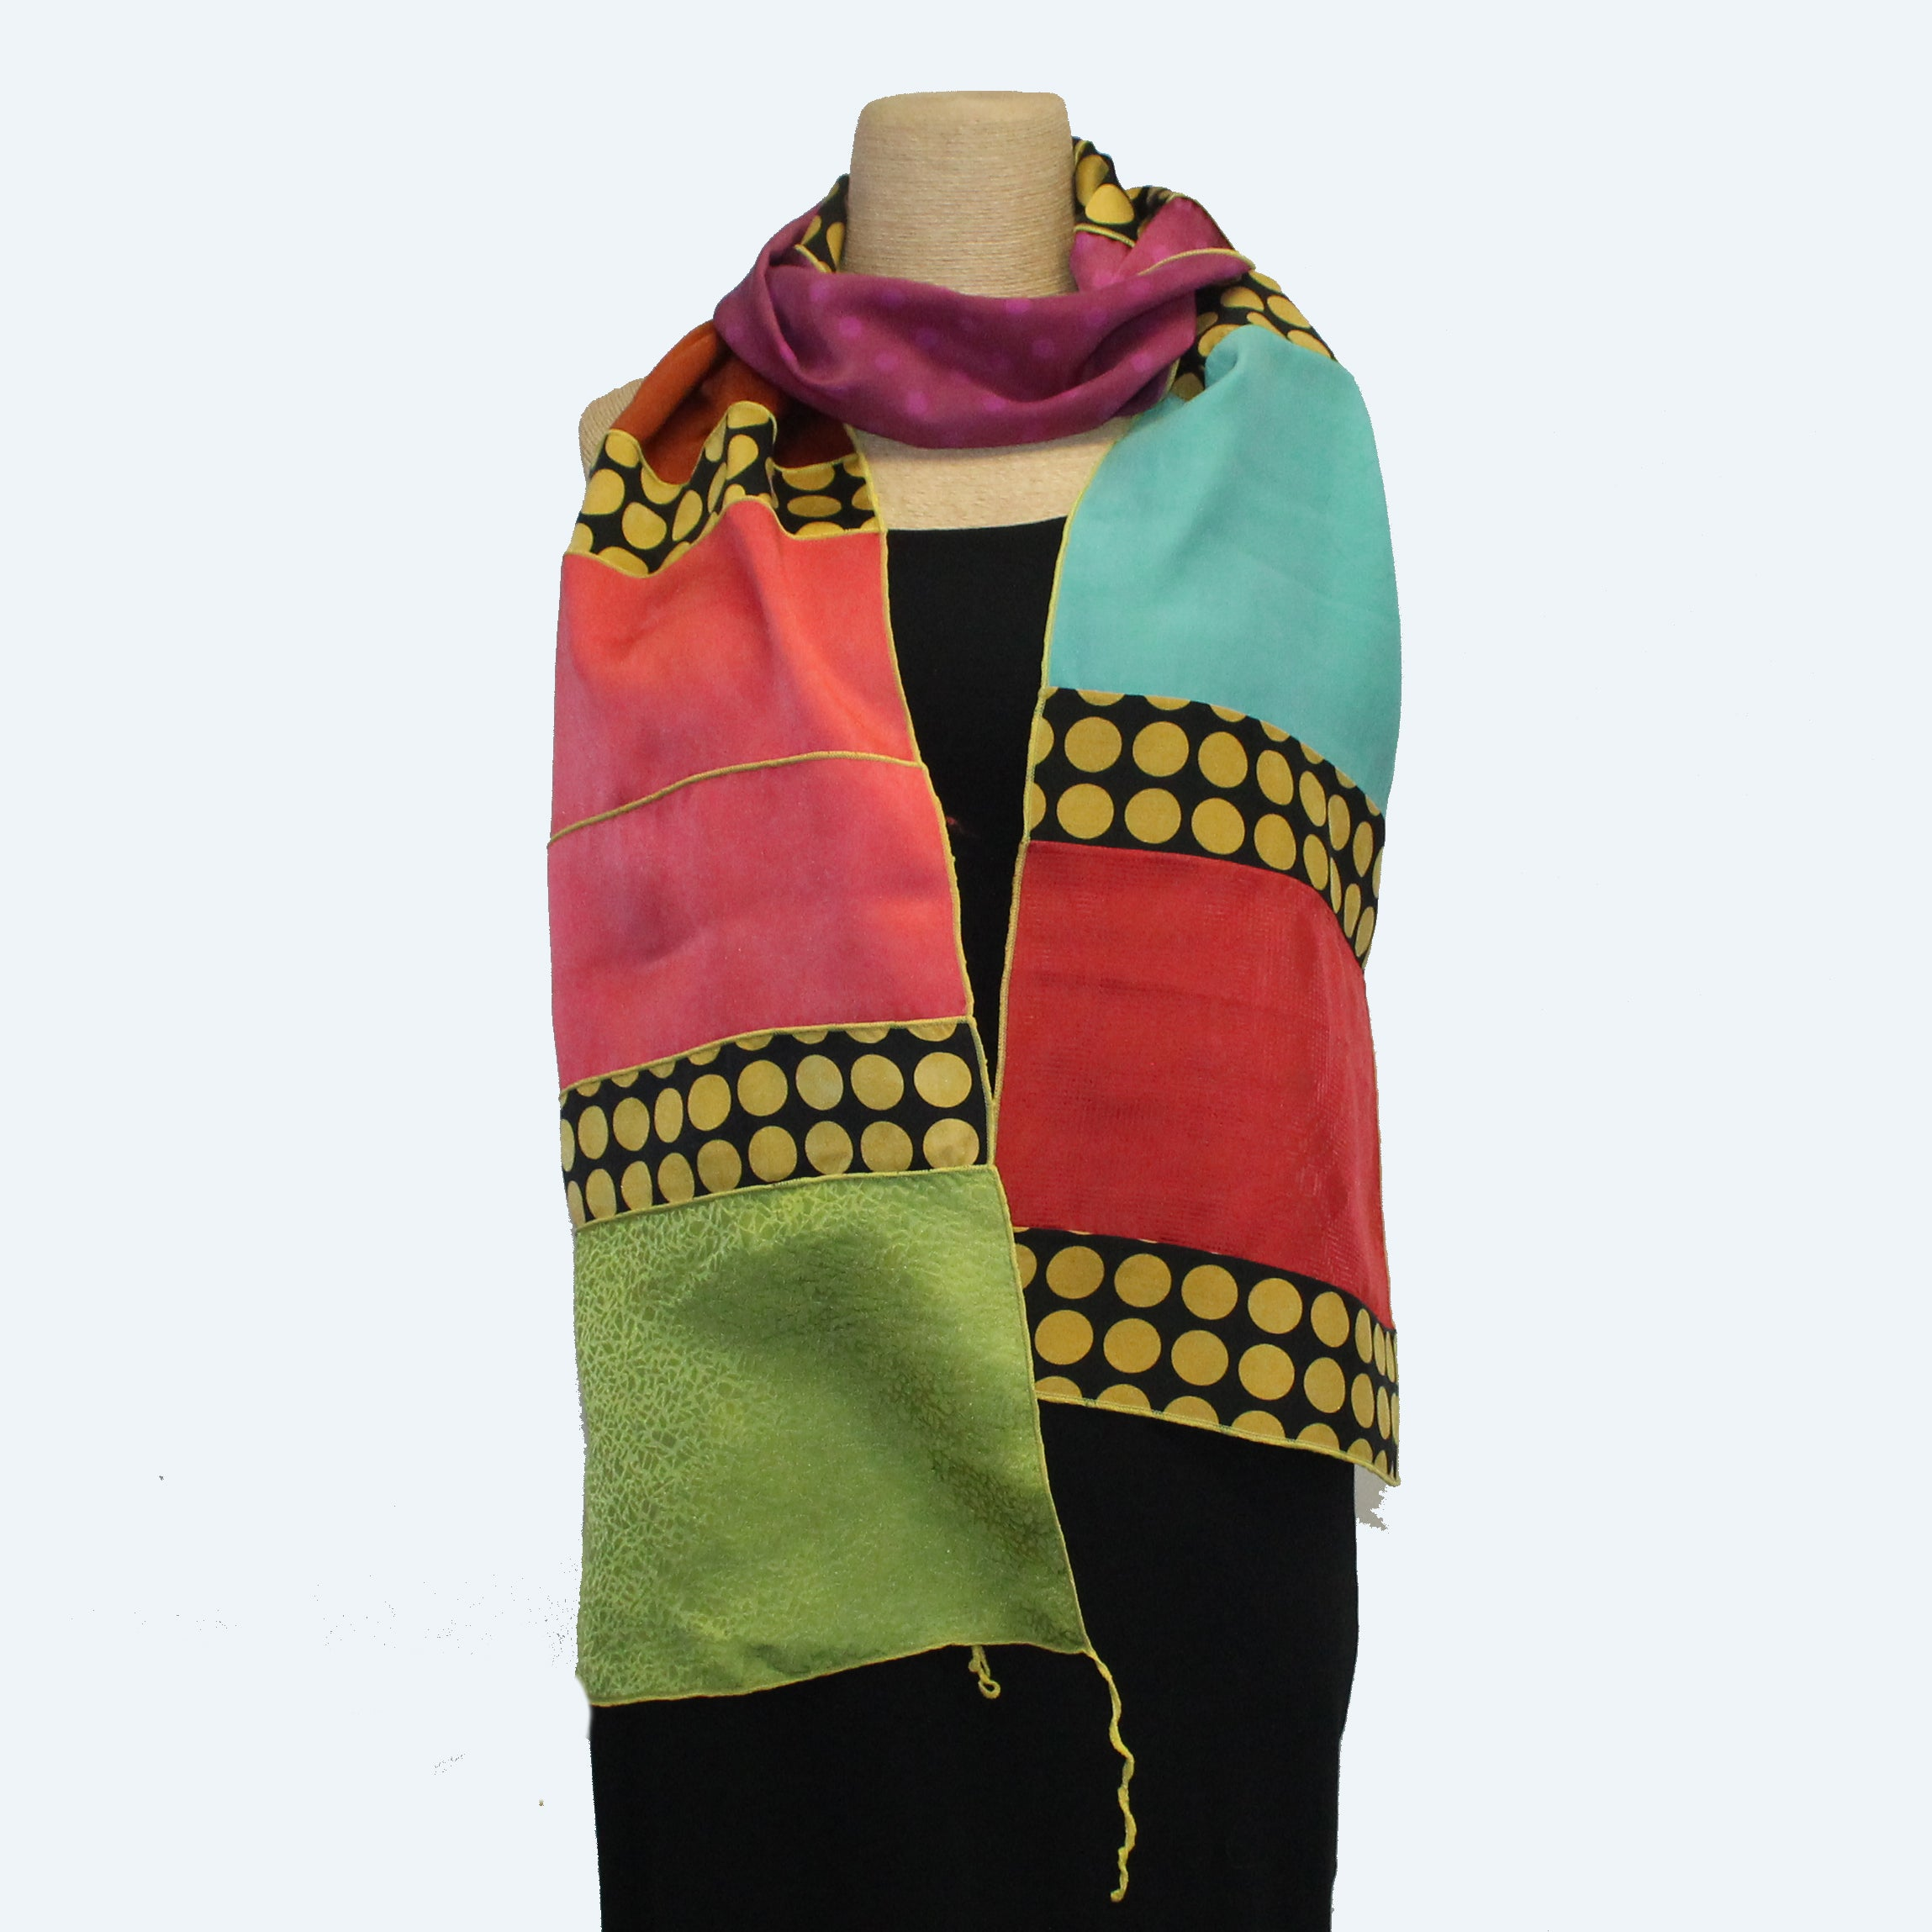 Judith Bird Scarf, Special Silk Singles, Yellow Dots/Multi-Colors